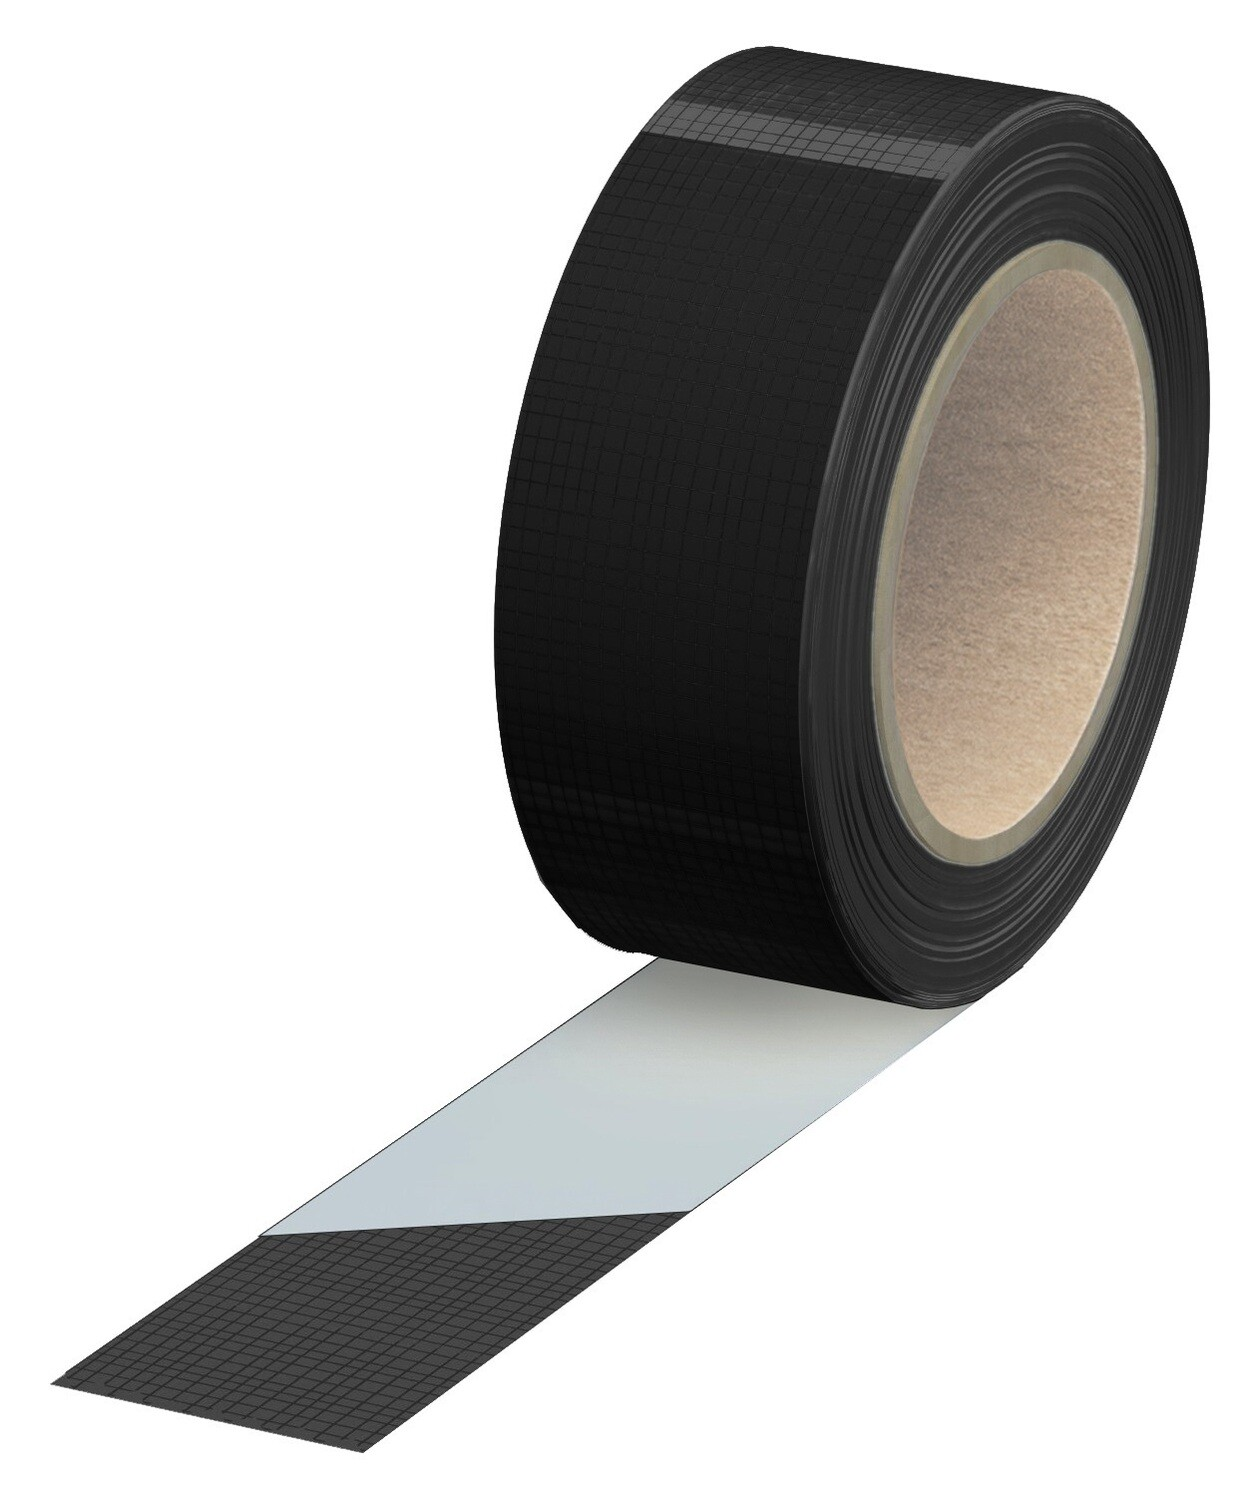 prodomo BLACK Air Tight Tape, 50 or 60mm x 25m